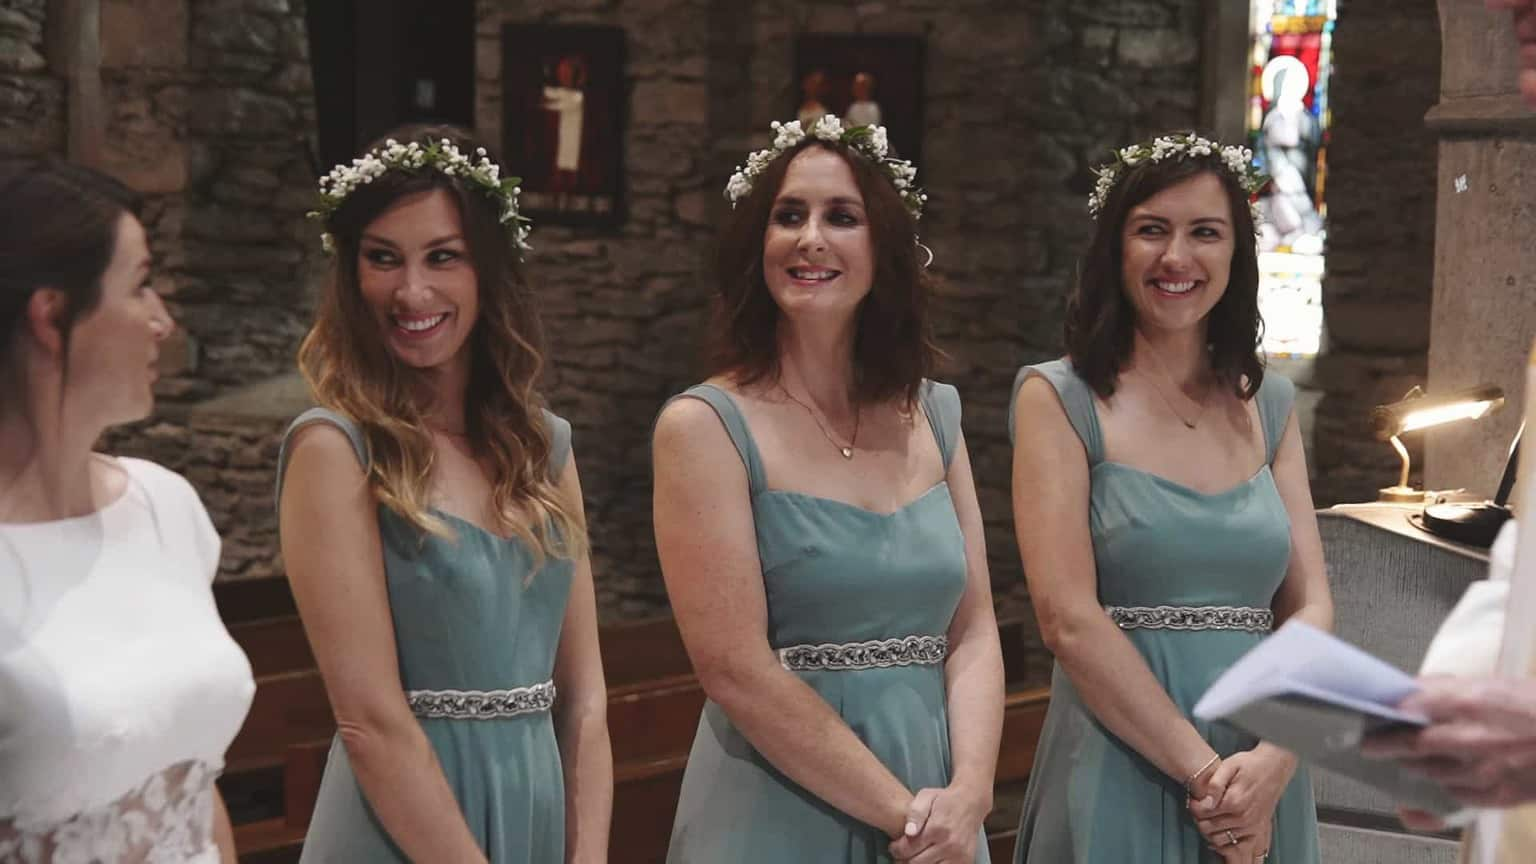 Bridesmaid are smiling during vows.